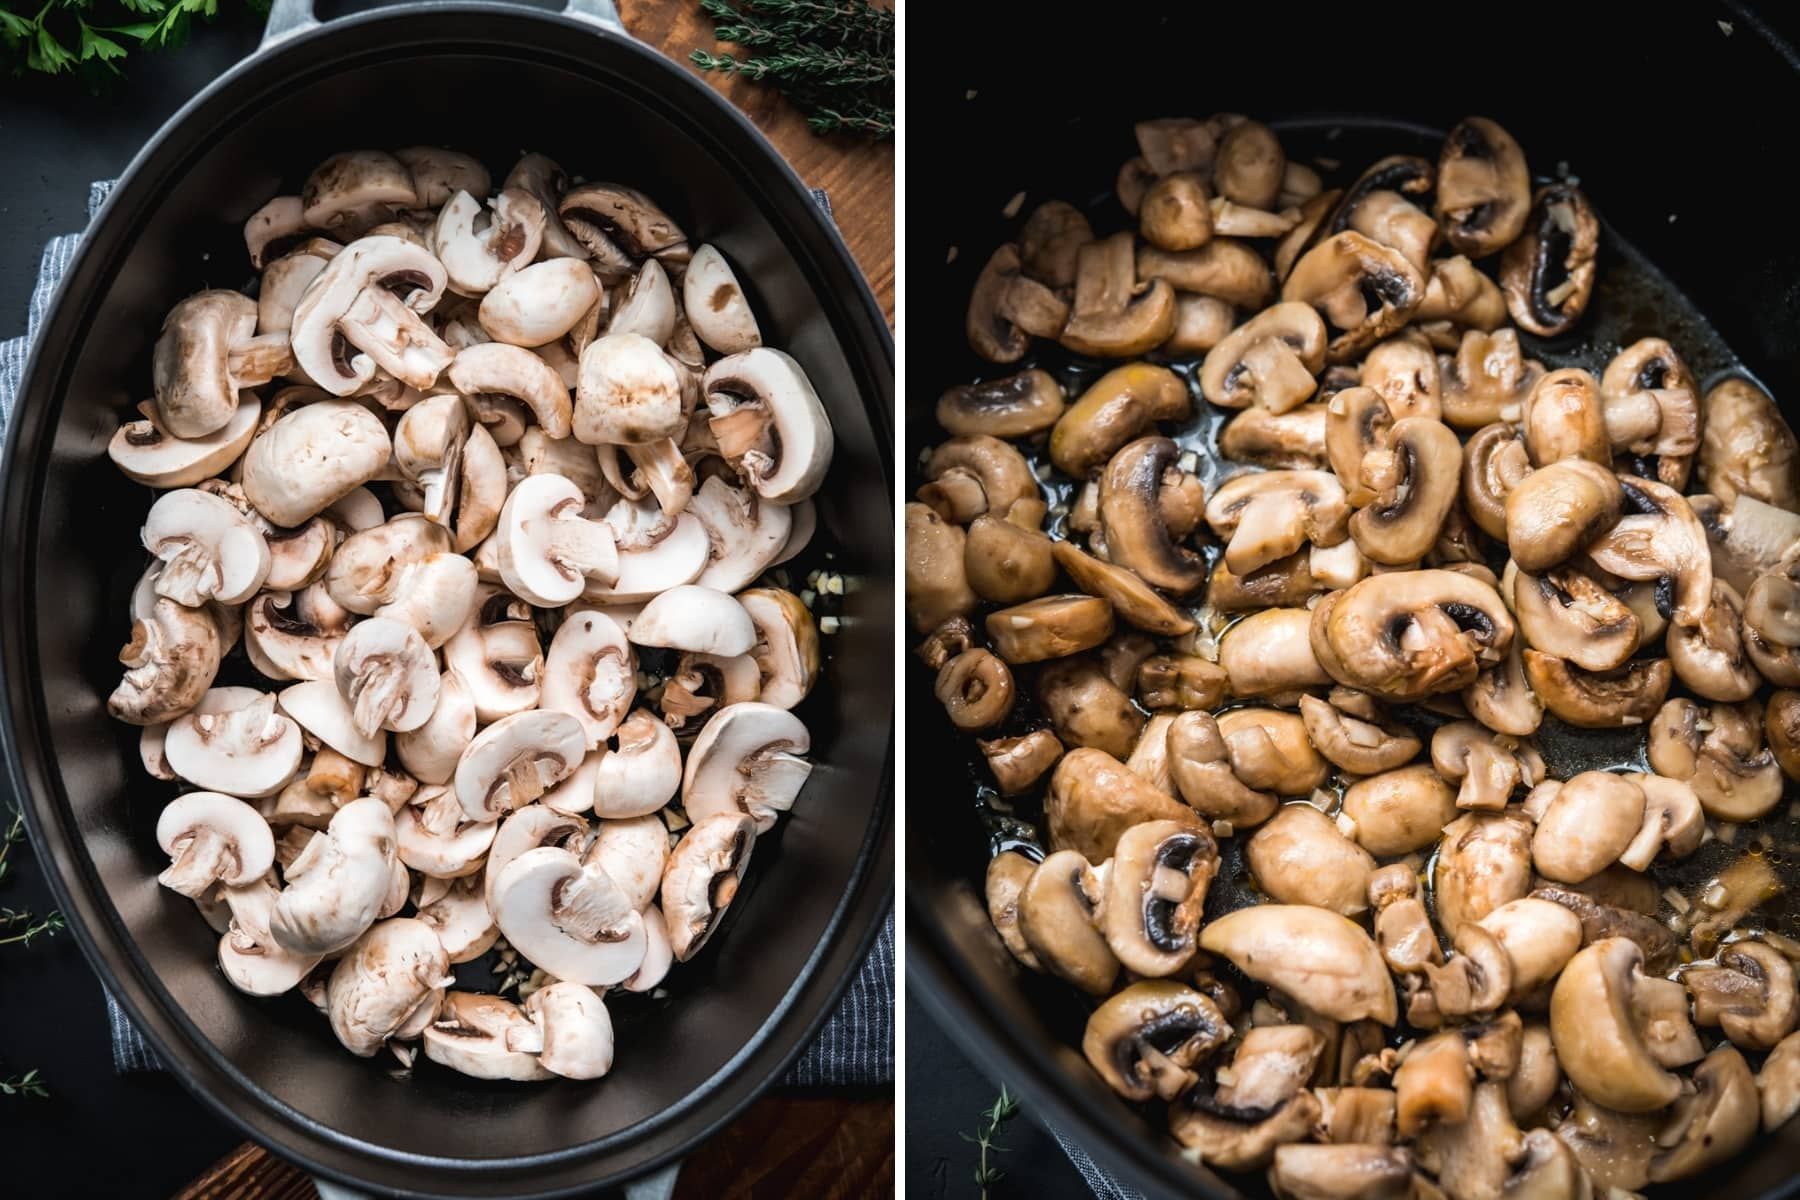 before and after of mushrooms being cooked in a large dutch oven.